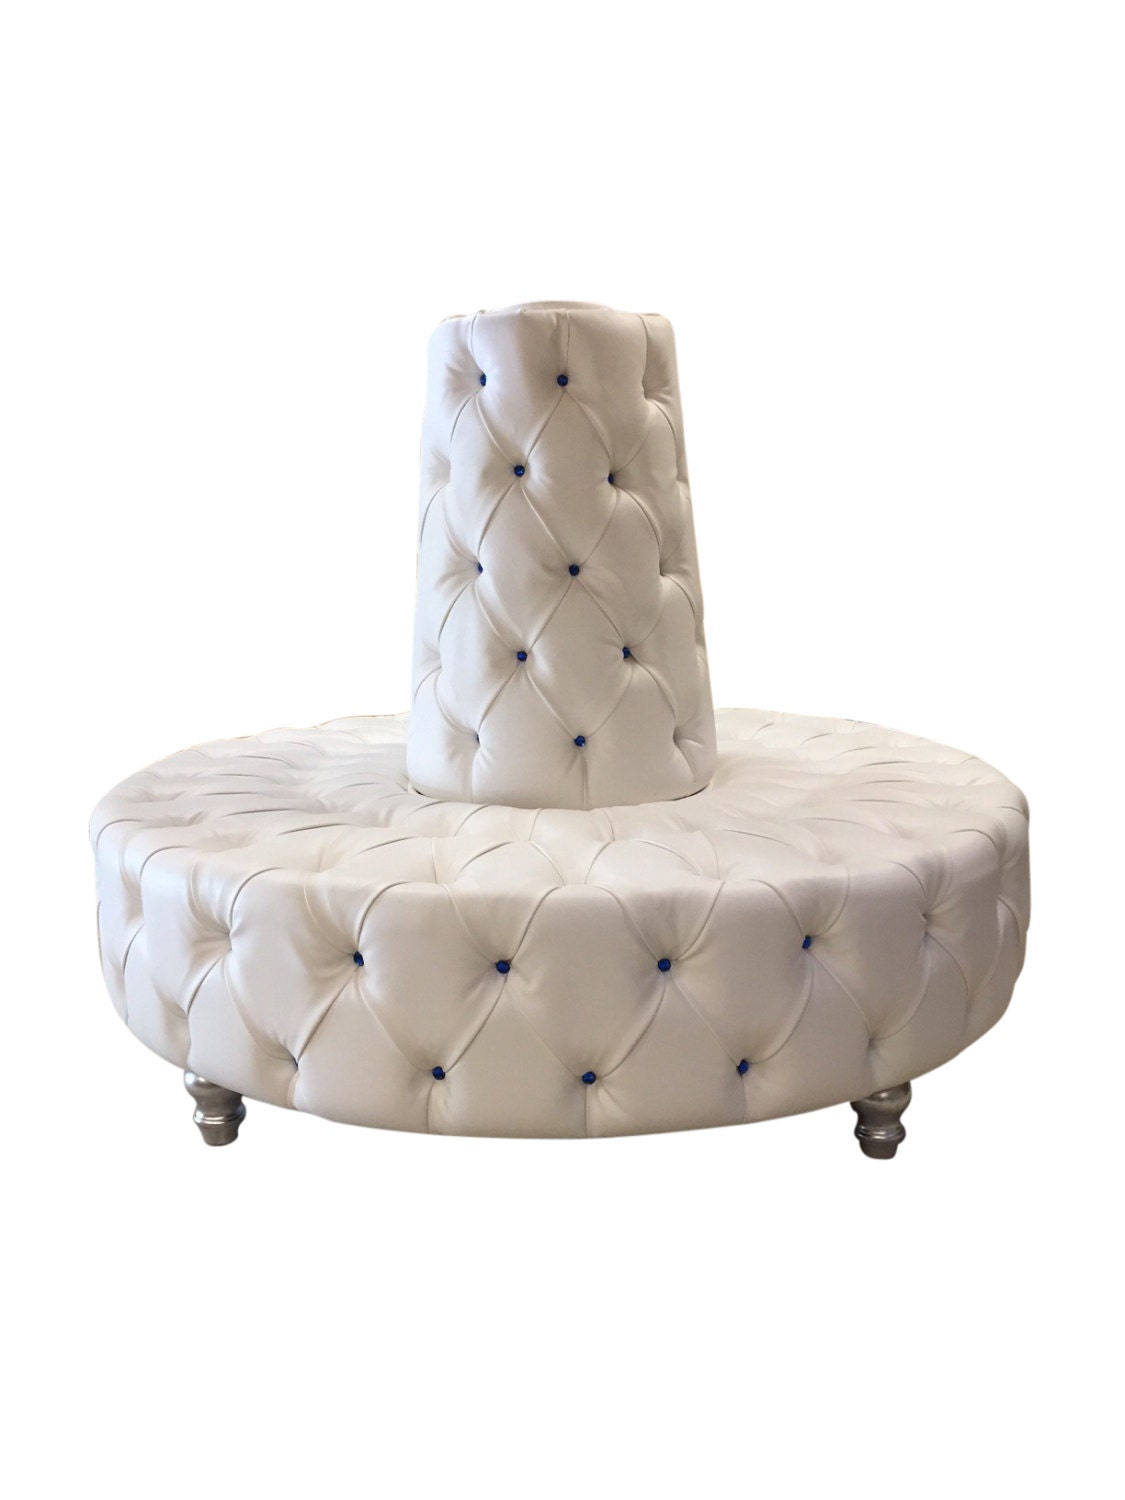 Round Sofa Circular Sofa Tufted Round Banquette Lobby Booth